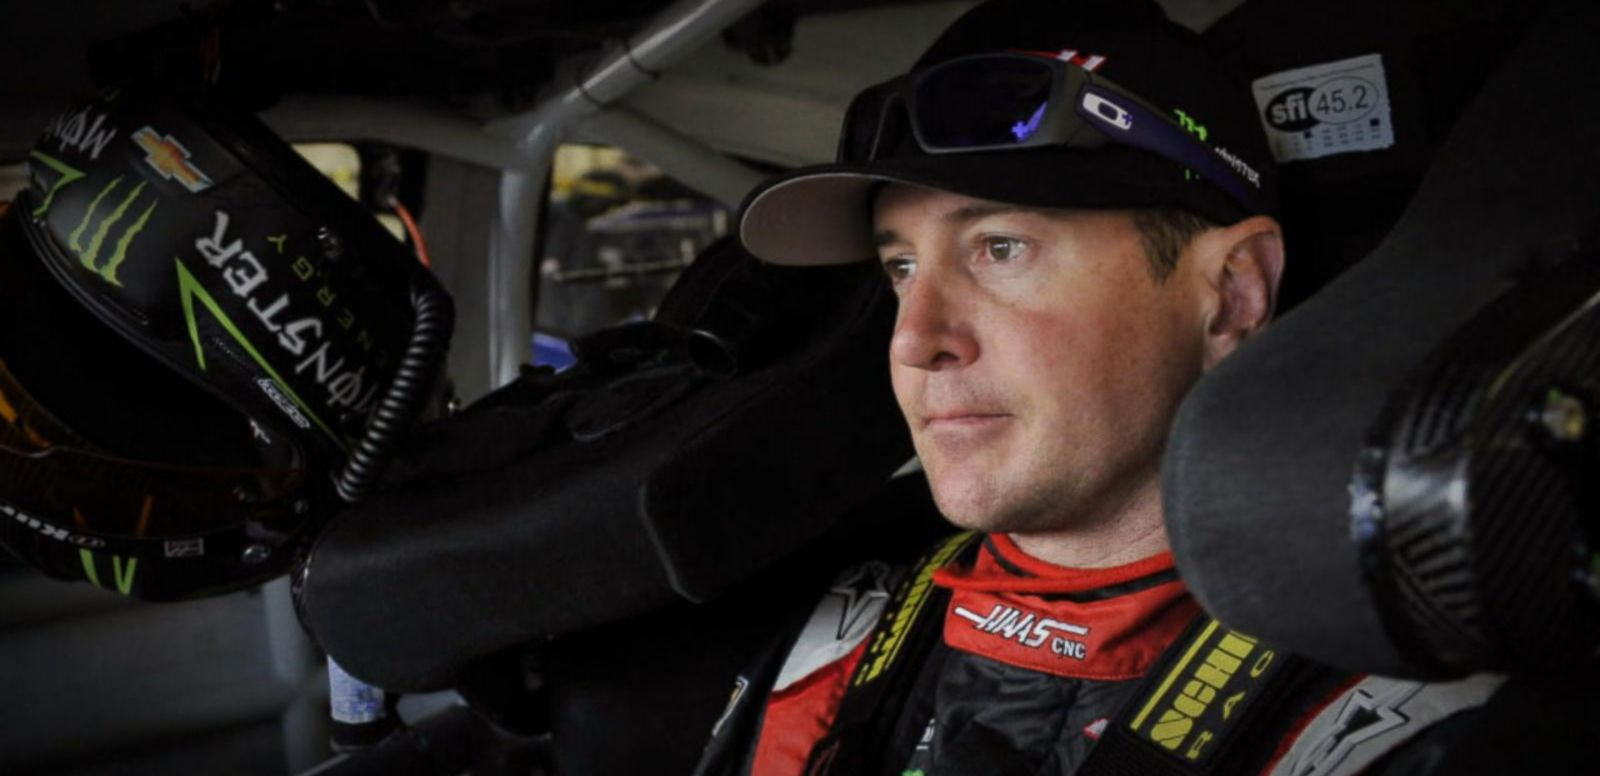 VIDEO: The NASCAR driver could be reinstated after receiving a lifetime ban from racing.